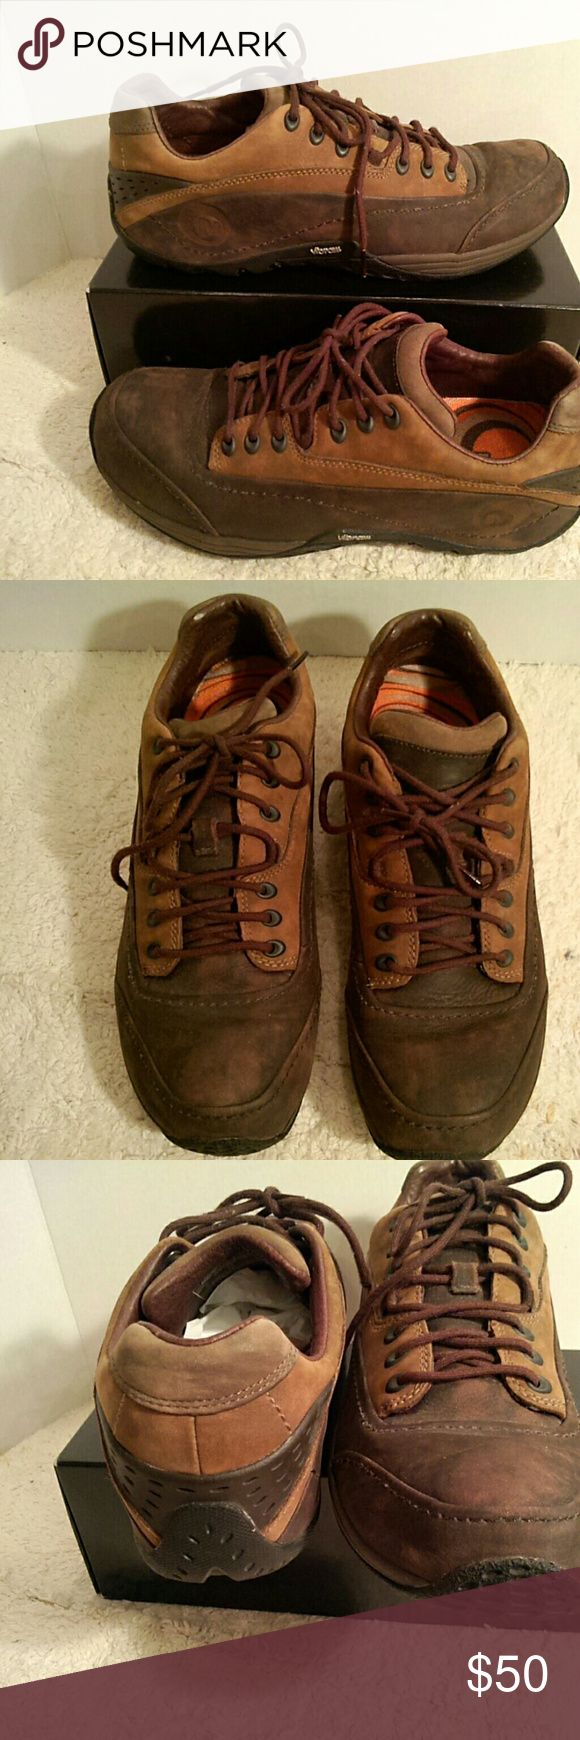 Mens Merrell brown leather sneakers two tone brown leather - mottled dark brown and a lighter tan; dark brown is mottled - inconsistent color; Vibram; air cushion insoles; Merrell Continuum; mens size 9 = womens 10.5   GUC    (T-26) Merrell Shoes Sneakers